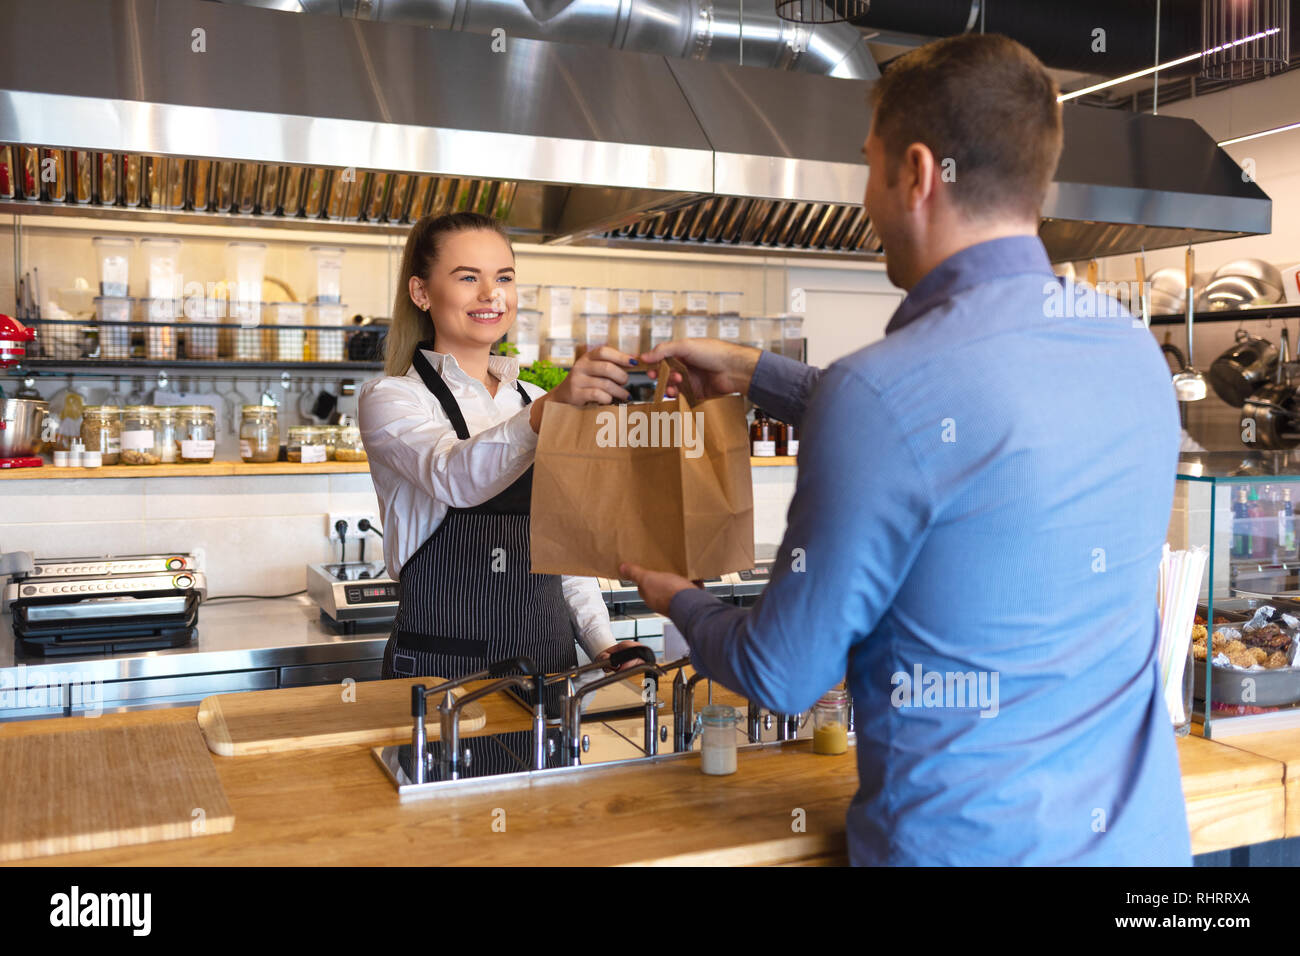 Small business and entrepreneur concept with smiling young waitress with black apron serving customer at counter in family restaurant, takeaway food - Stock Image